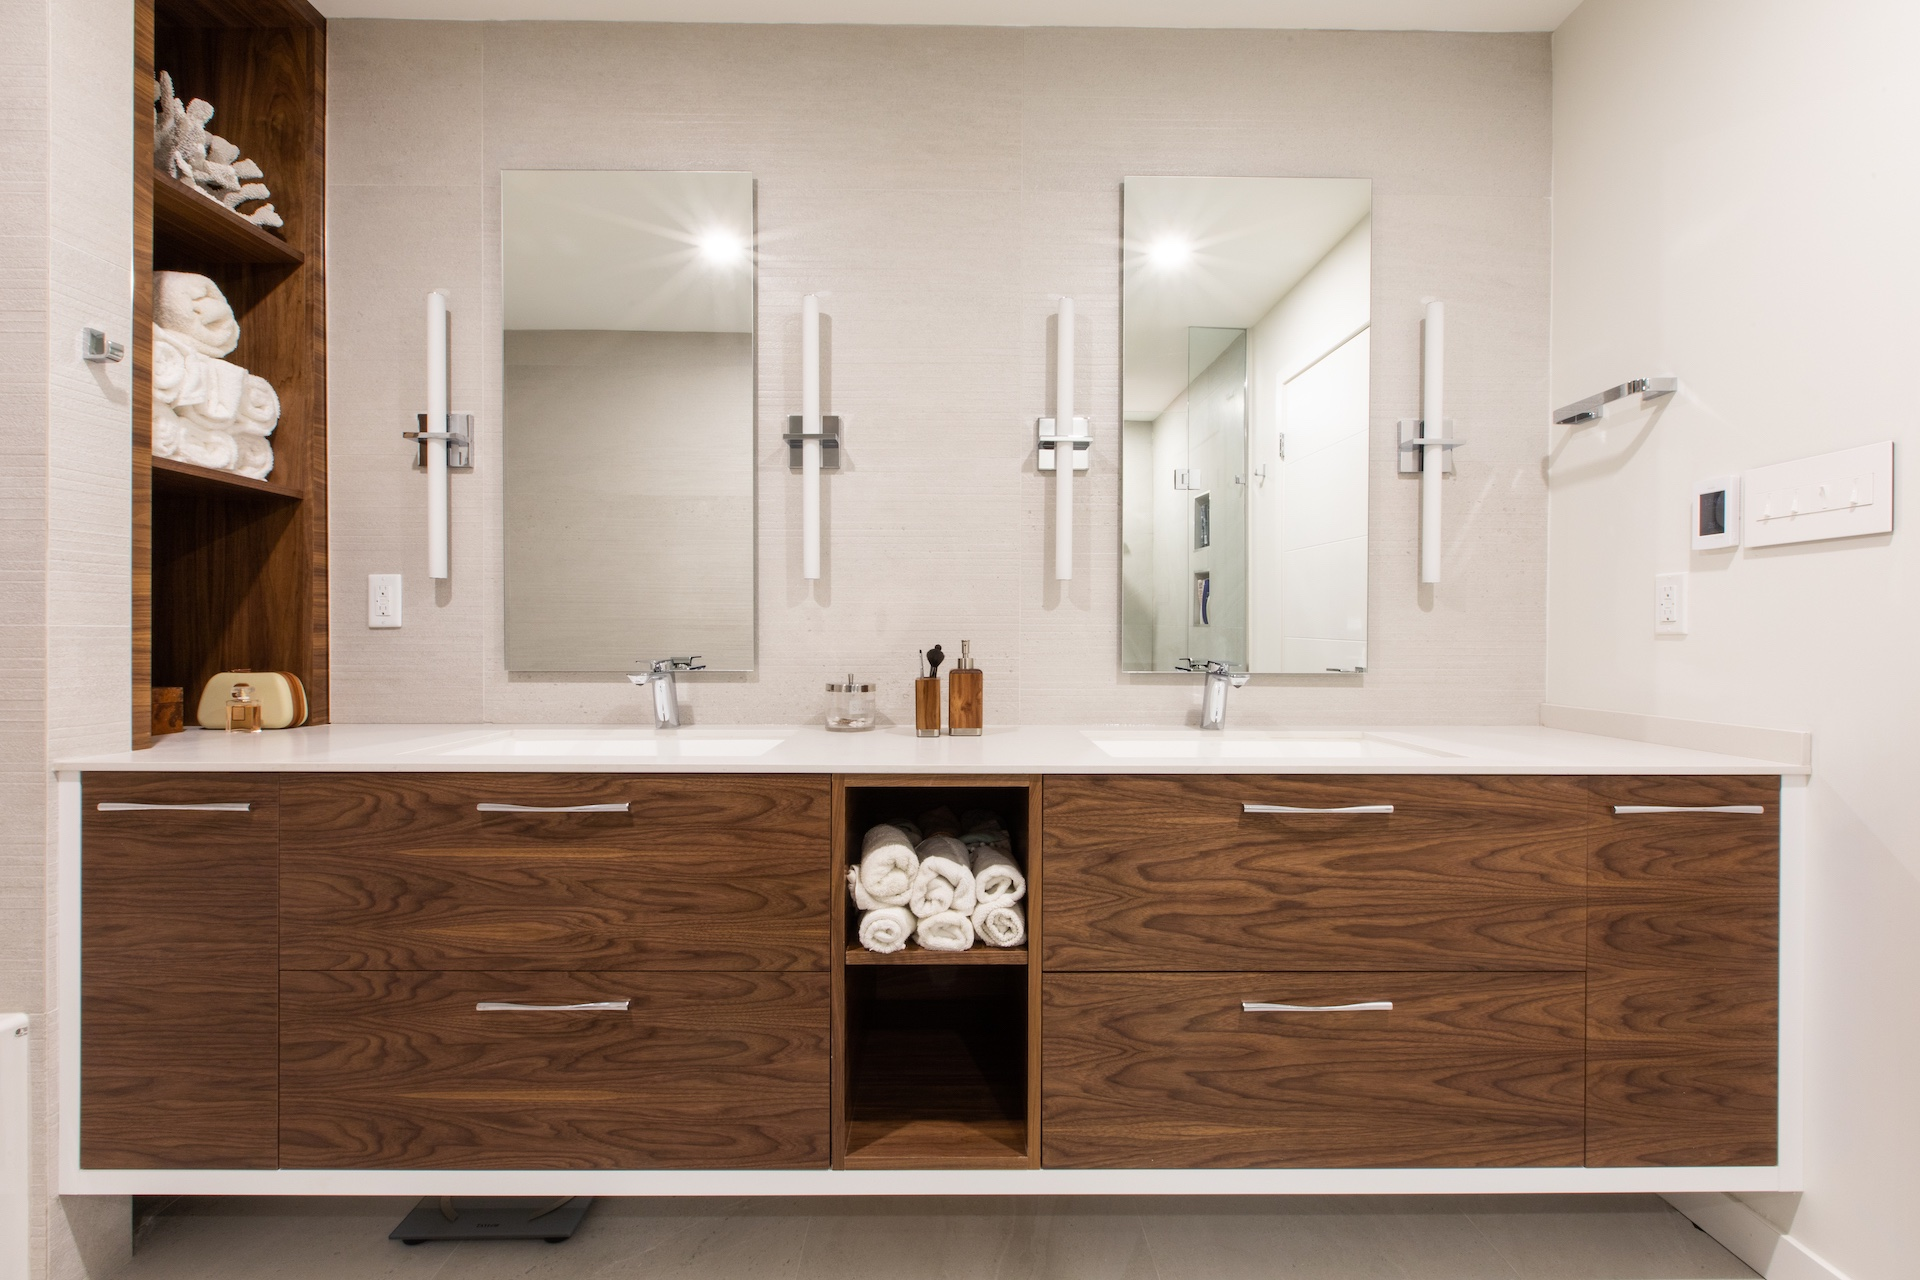 bath vanity double sinks wood cabinets